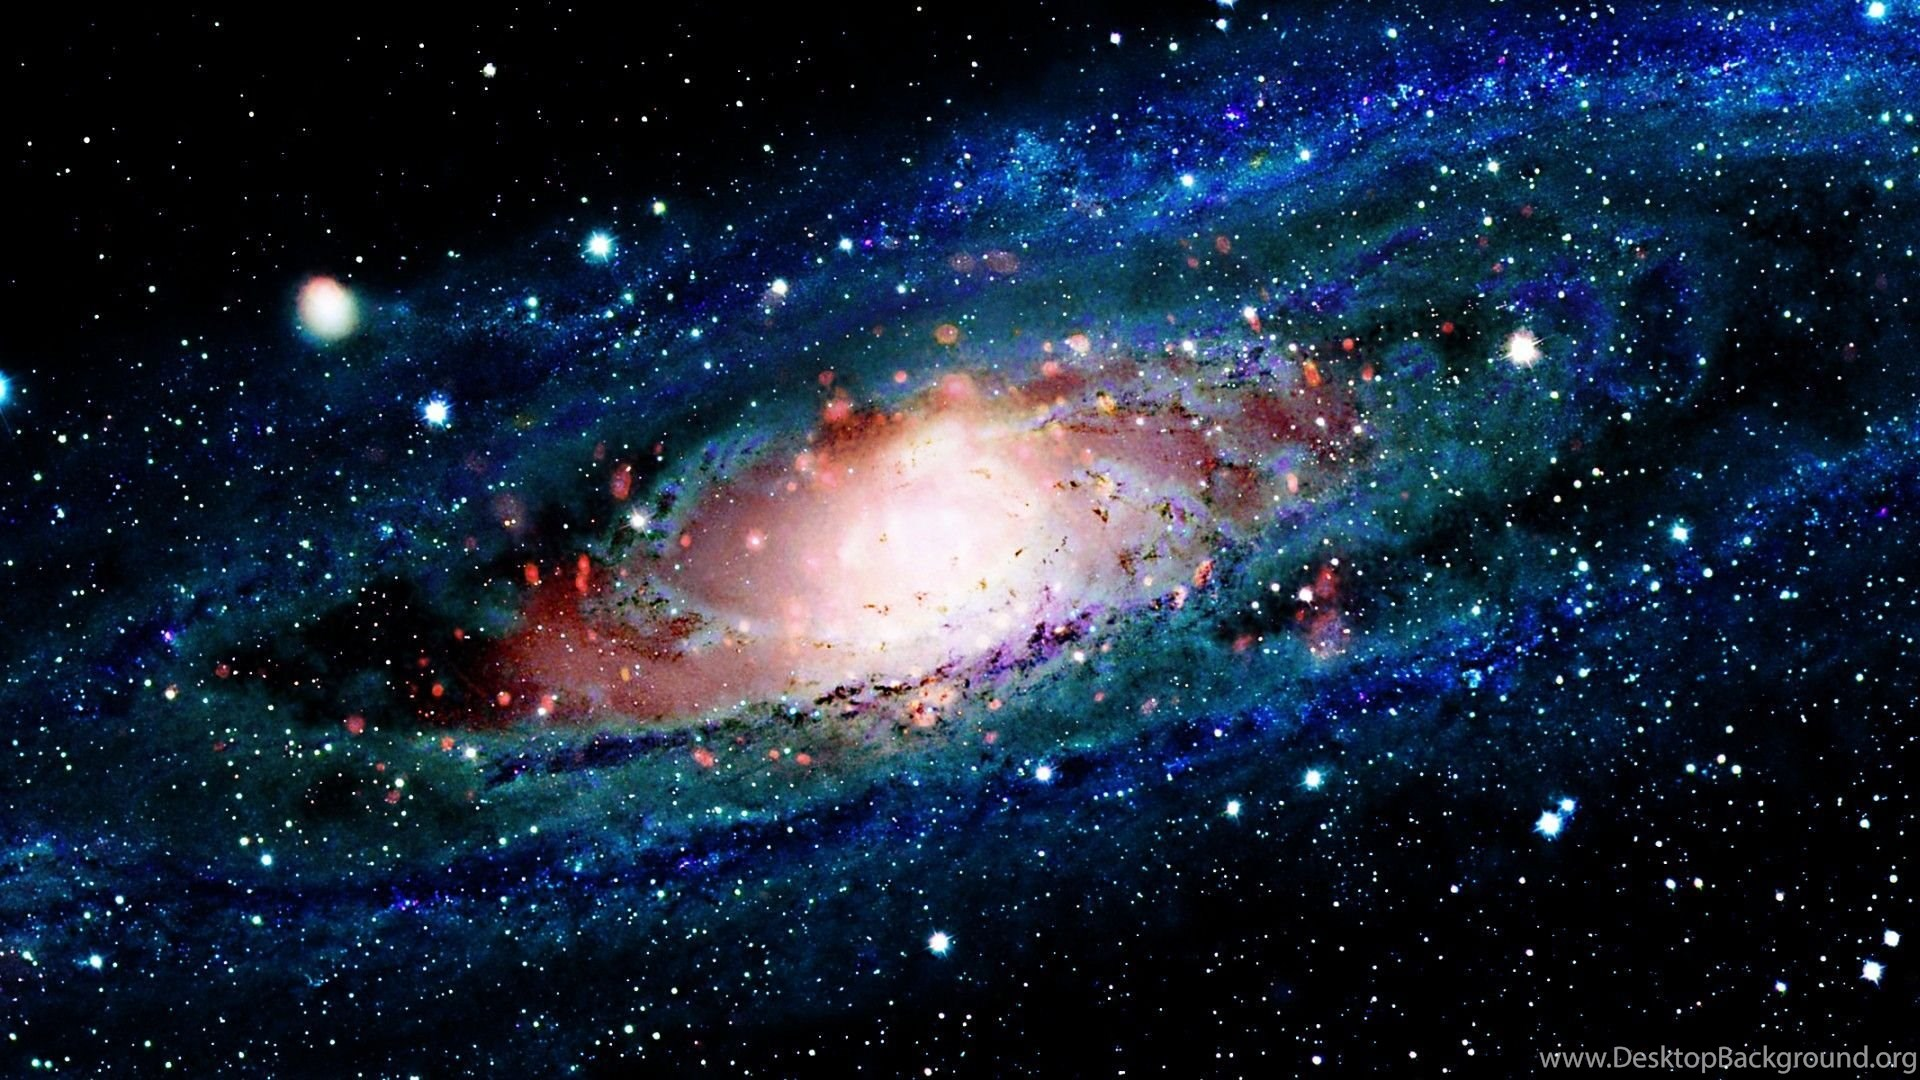 38444 galaxy wallpapers widescreen 24 cool wallpapers hivewallpaper